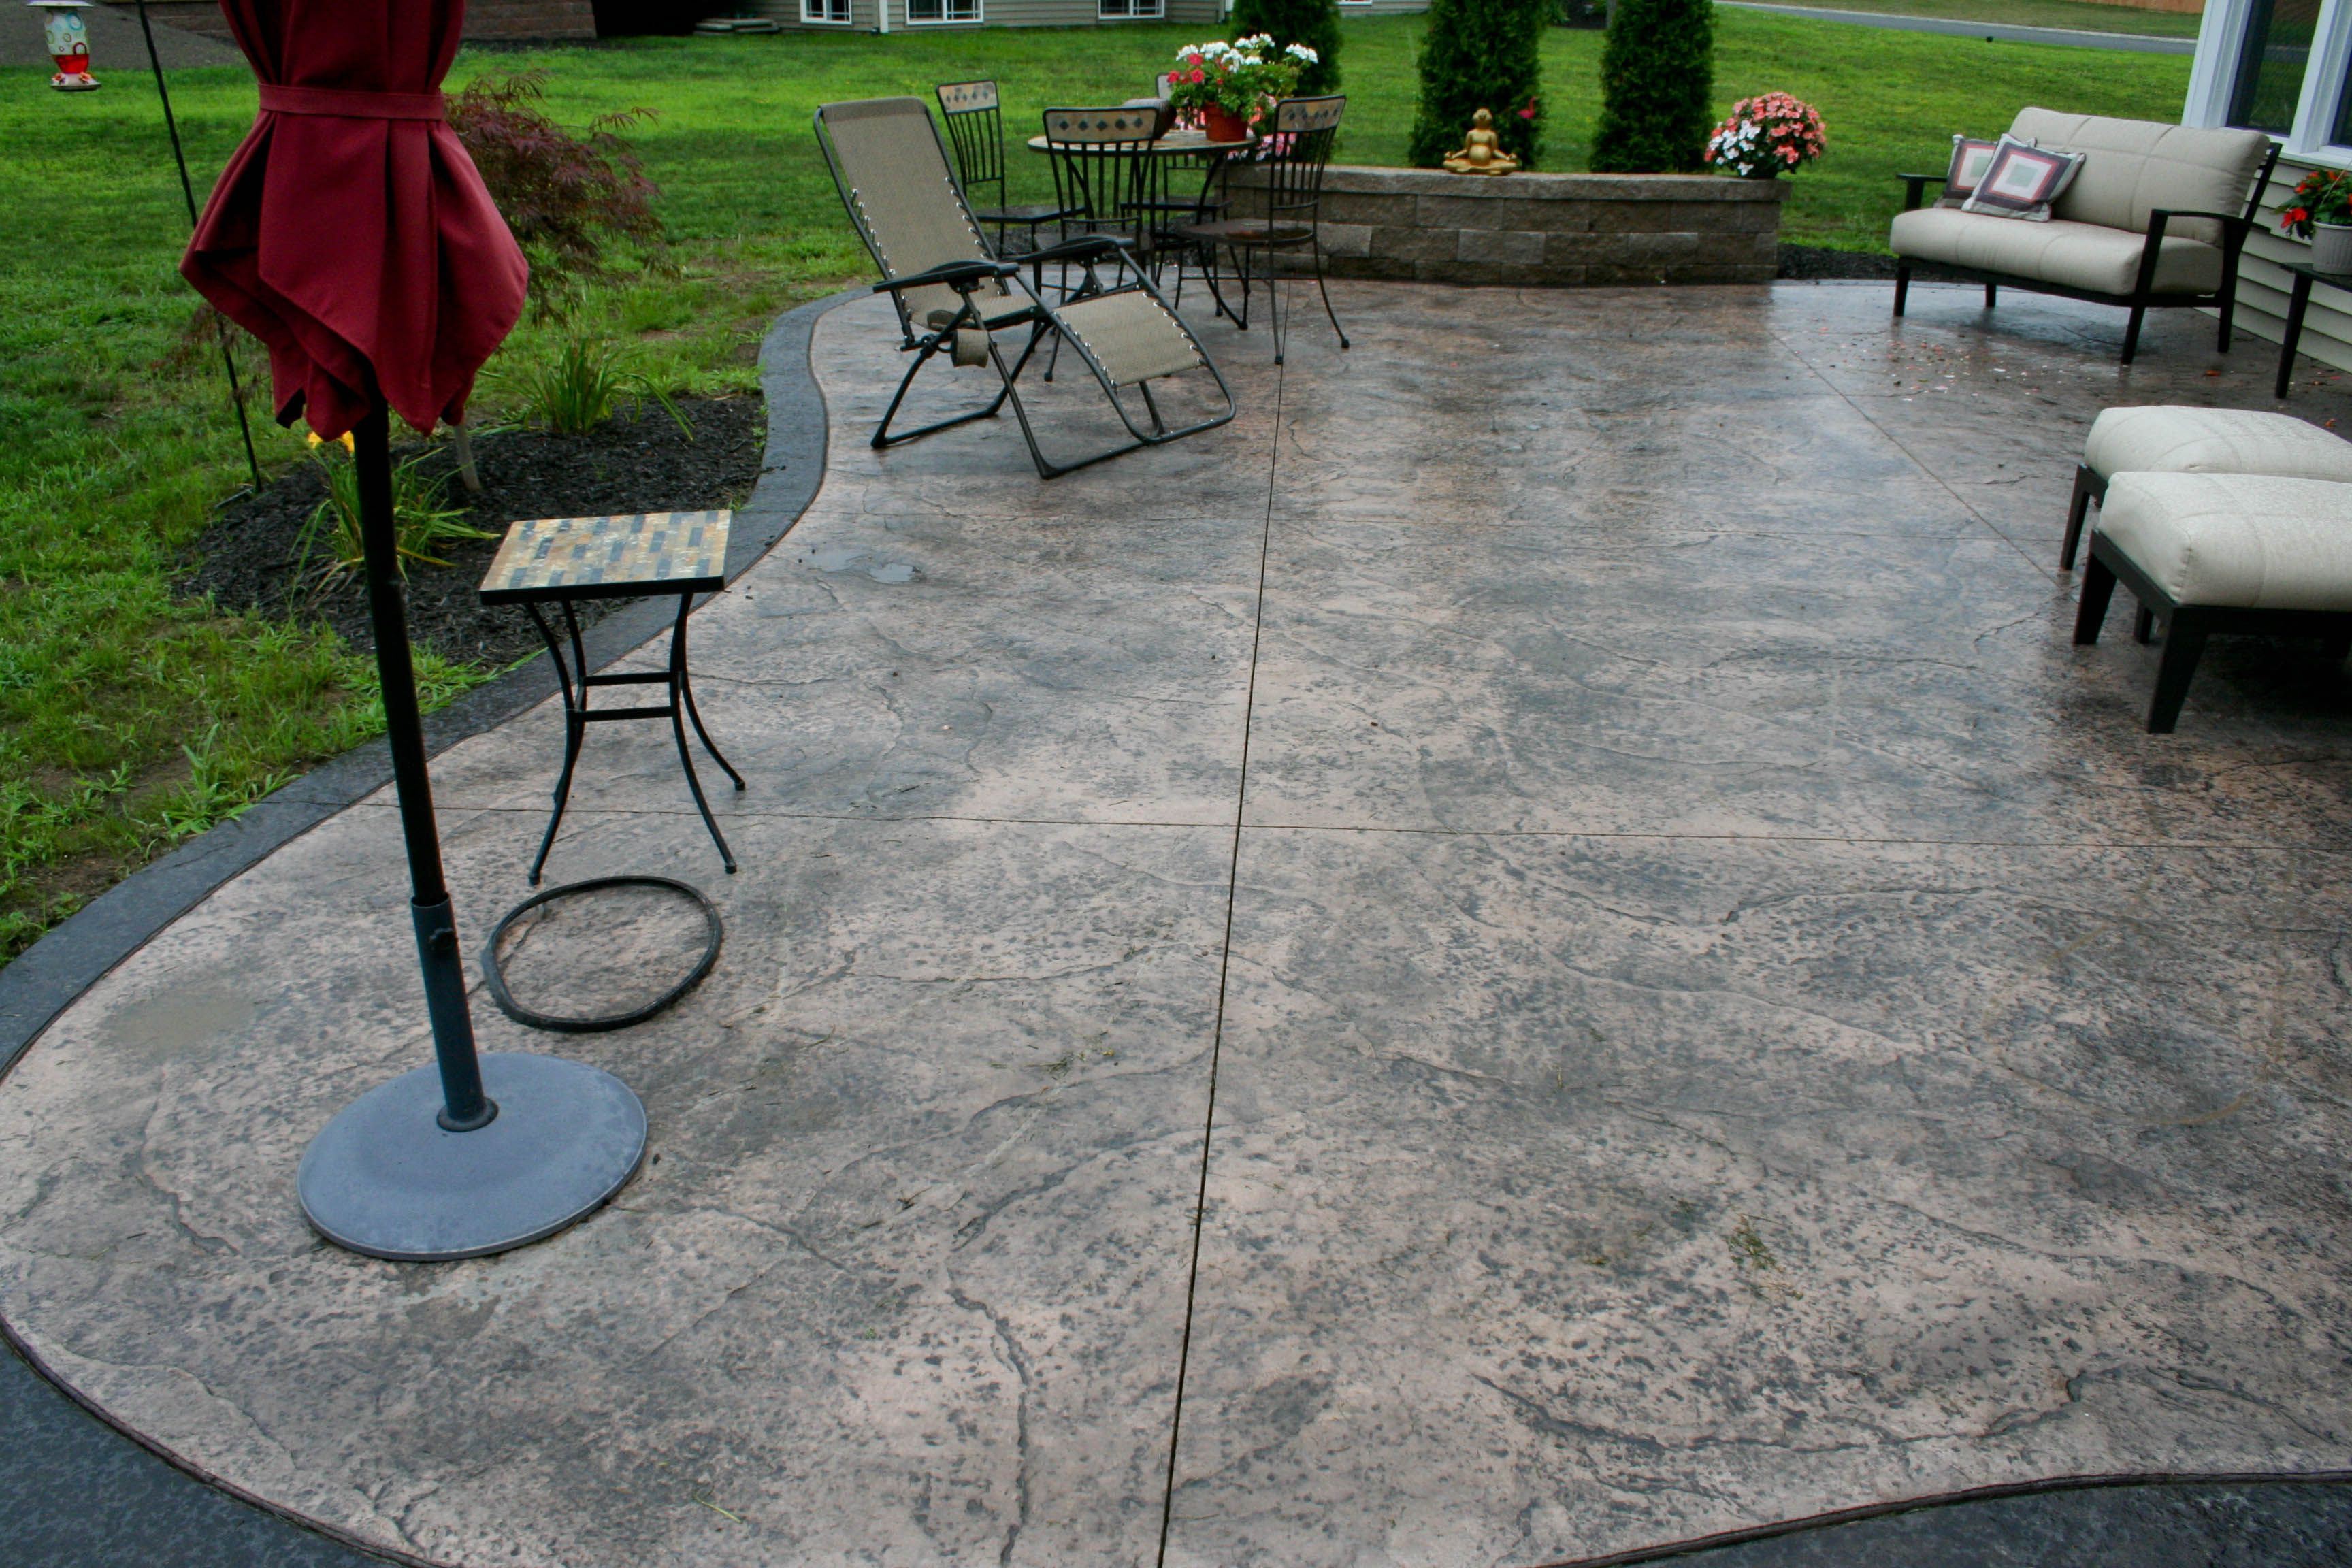 Concrete Patio Design Ideas elegant modern concrete patio designs elegant modern concrete patio designs with additional decorating home ideas with Stamped Concrete Patio For Patio Flooring Style With Many Benefits Httpwww